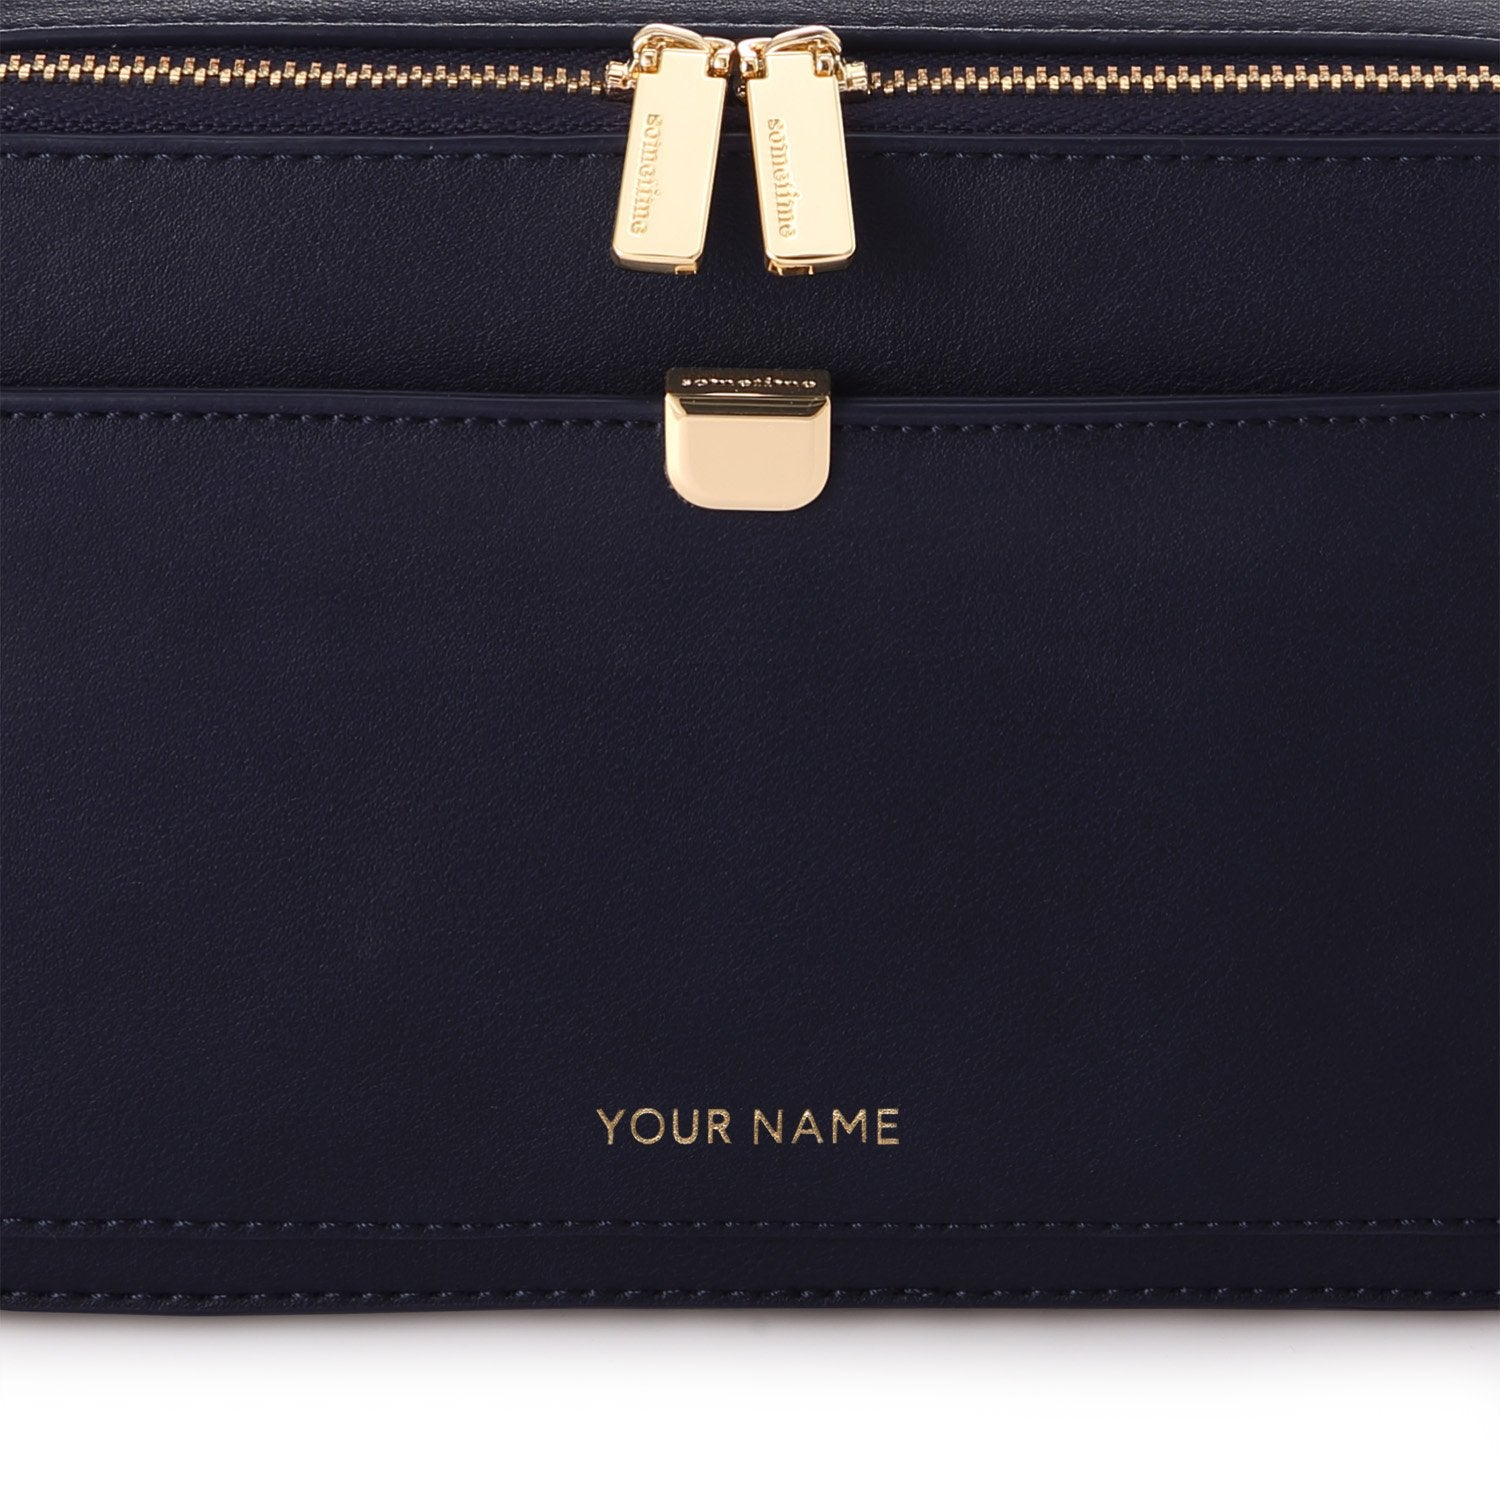 LOFARBAG MINI - NAVY